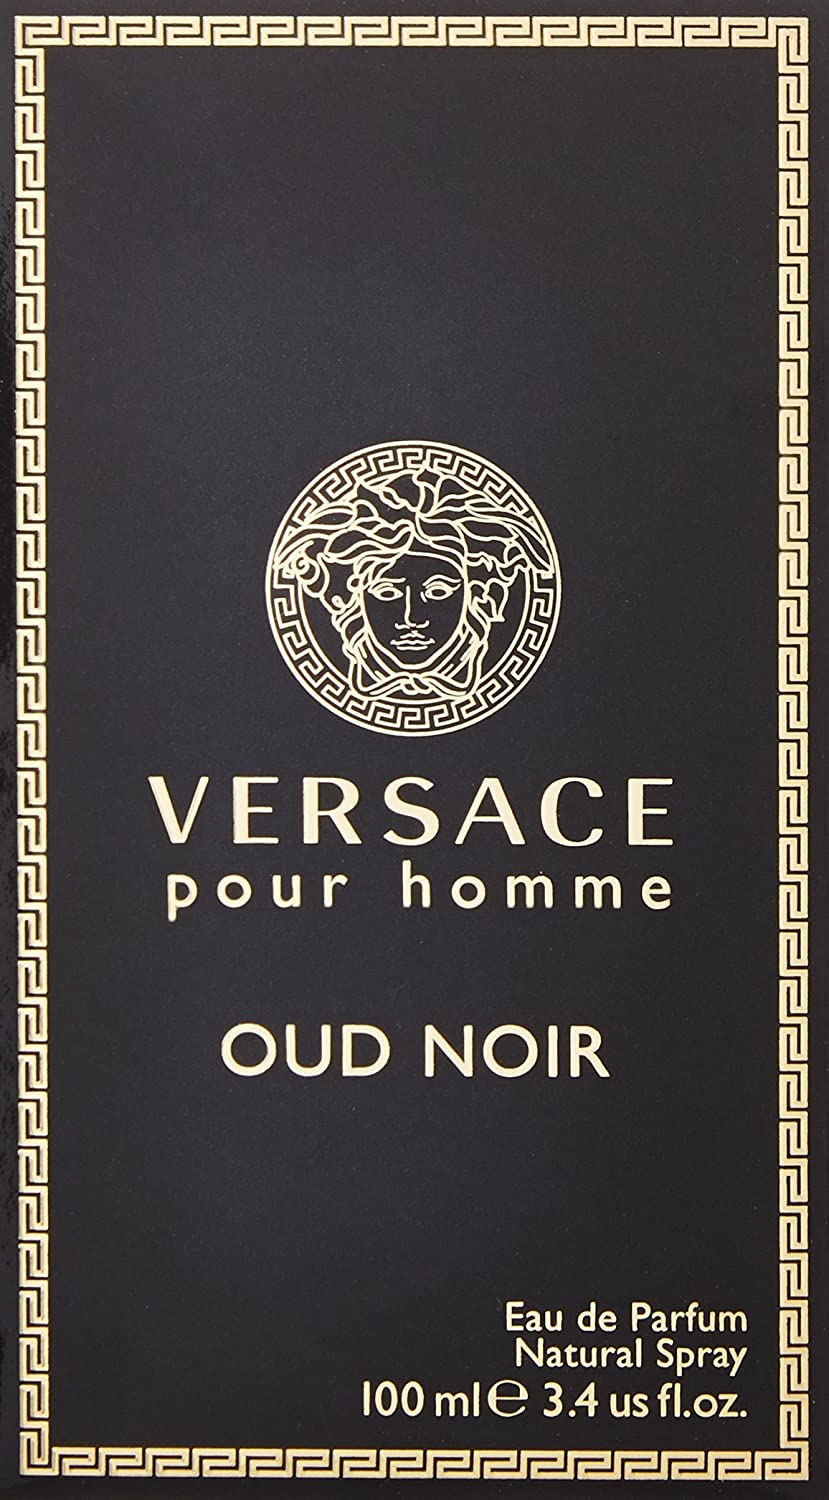 2a453147c Versace Pour Homme Oud Noir by Versace for Men - Eau de Parfum, 100ml:  Amazon.ae: Rakuten1